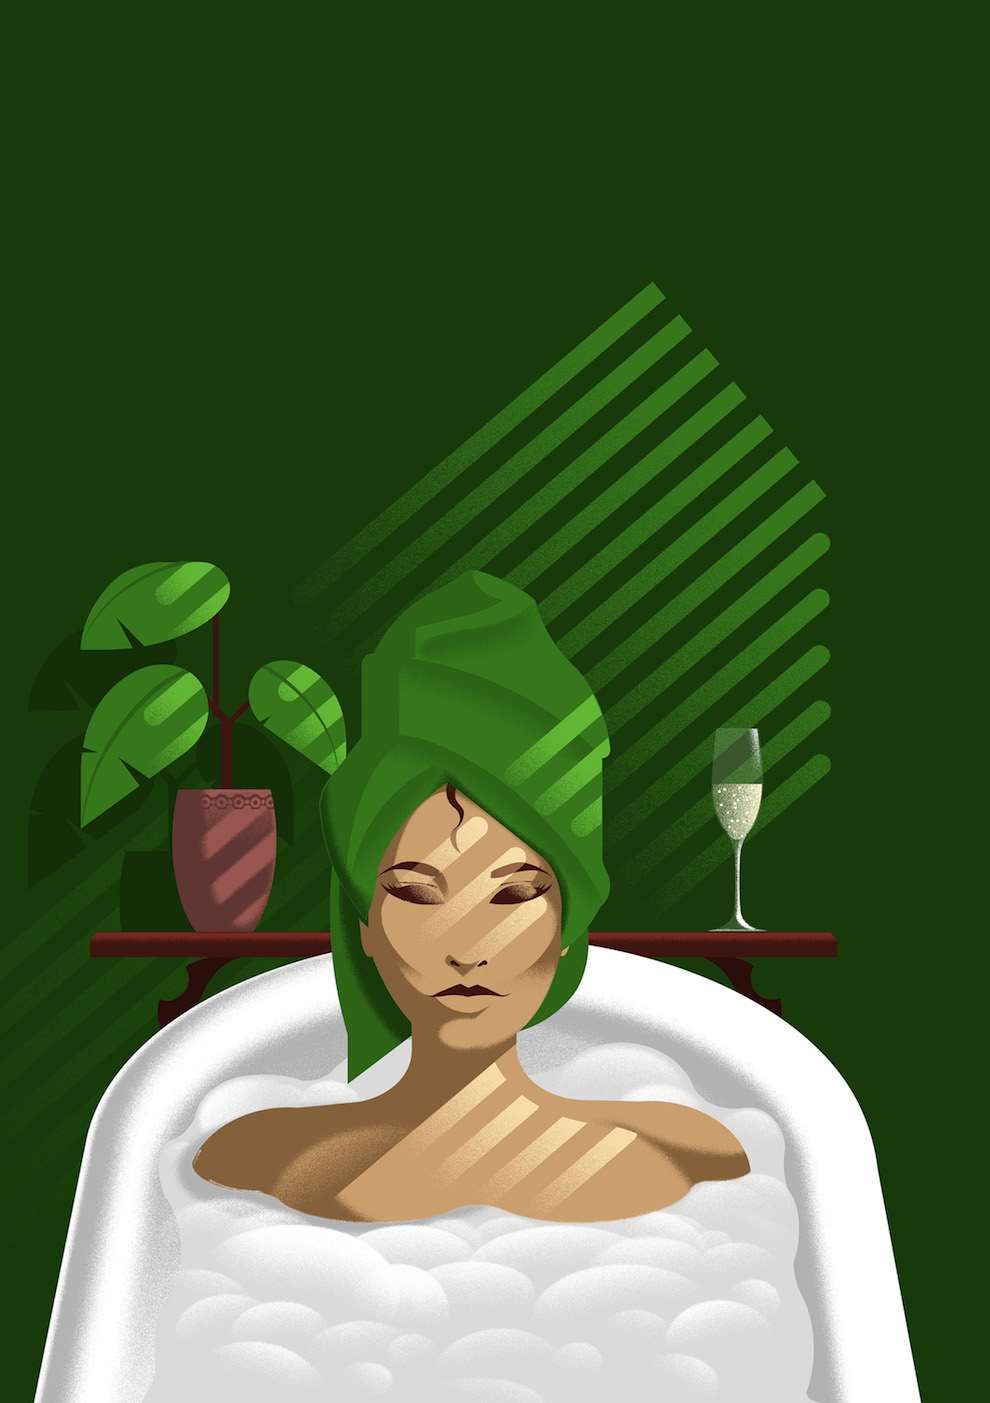 Blue Bateau, Bold and graphic digital illustration of a woman taking a bath